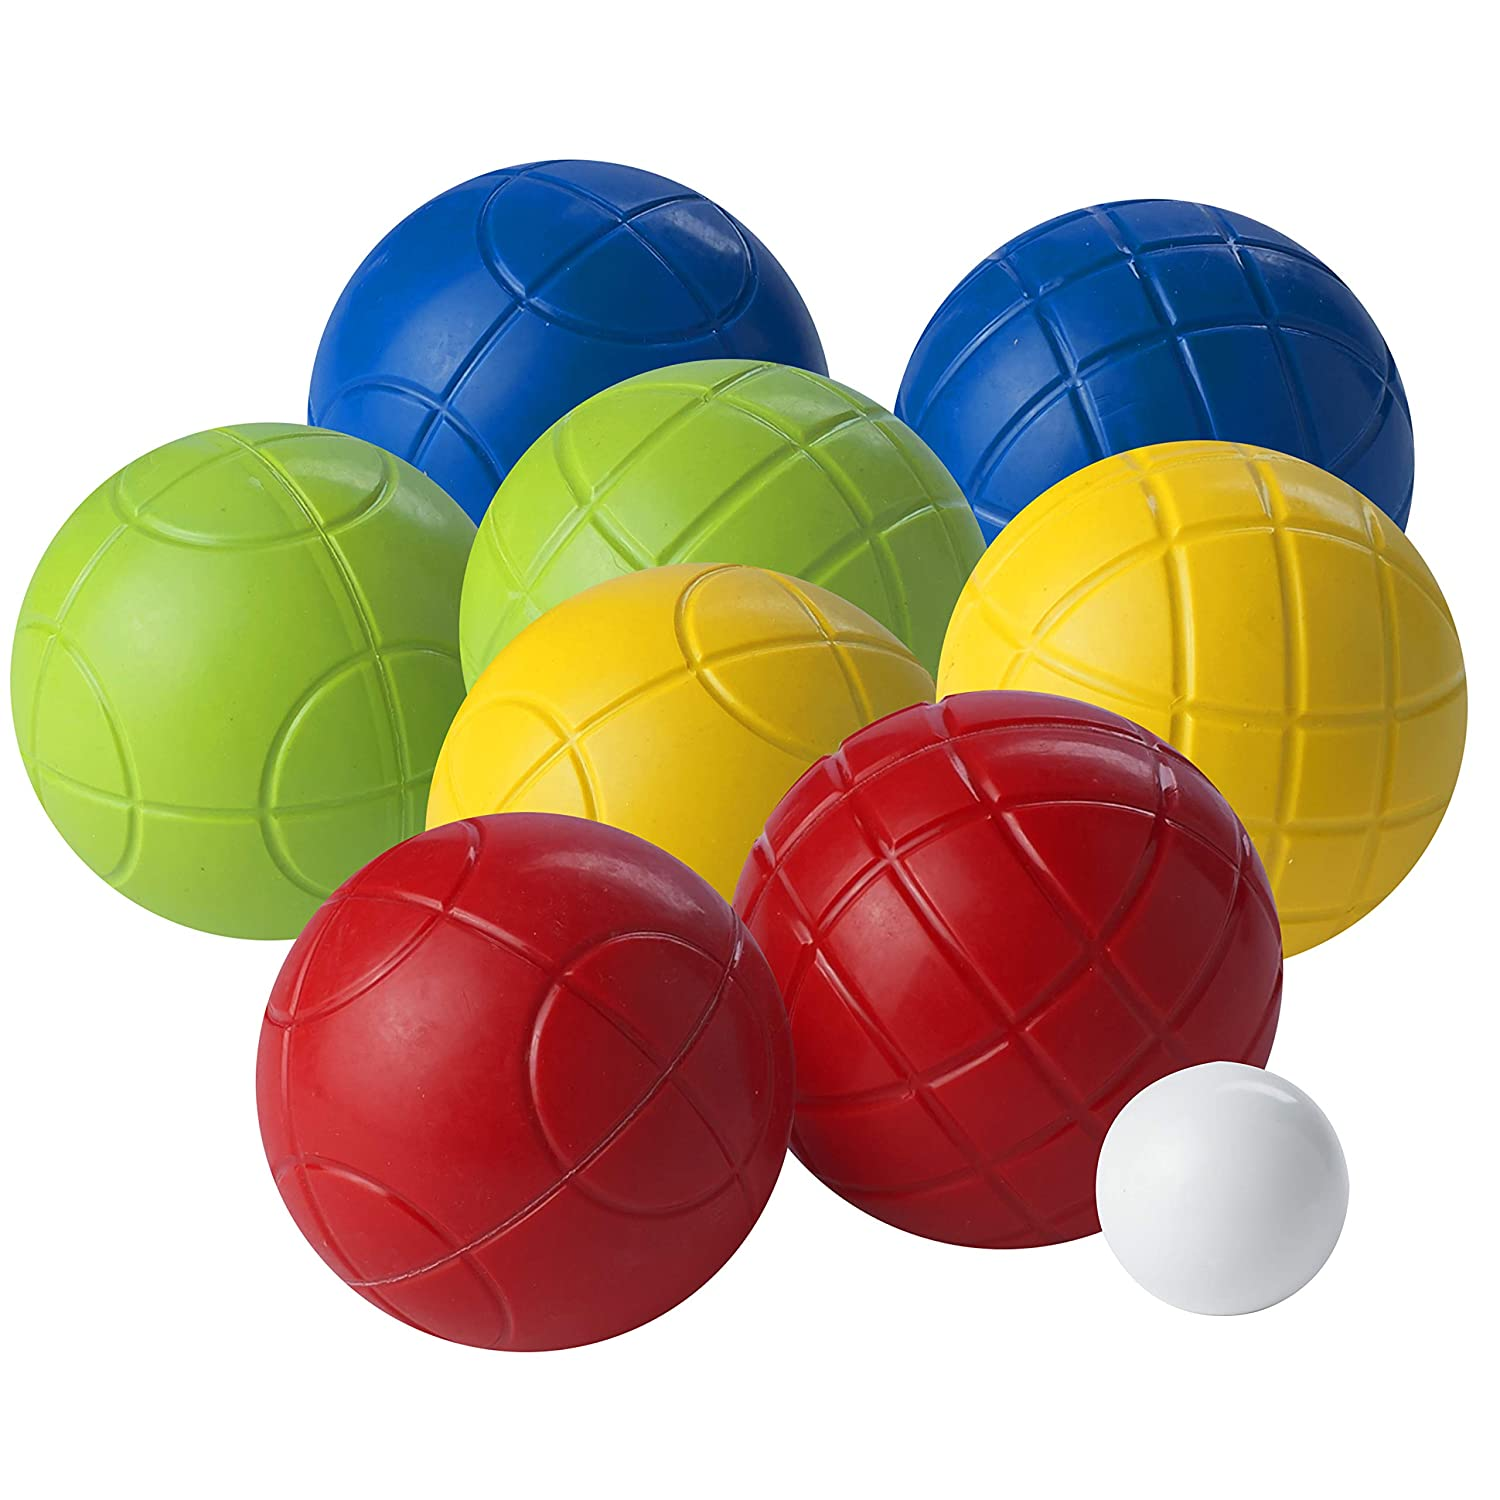 Franklin Sports Bocce Ball Set — 8 All Weather 90mm Soft Bocce Balls and 1 Pallino — Beach, Backyard Lawn or Outdoor Party Game — Professional, American, and Starter Set Options